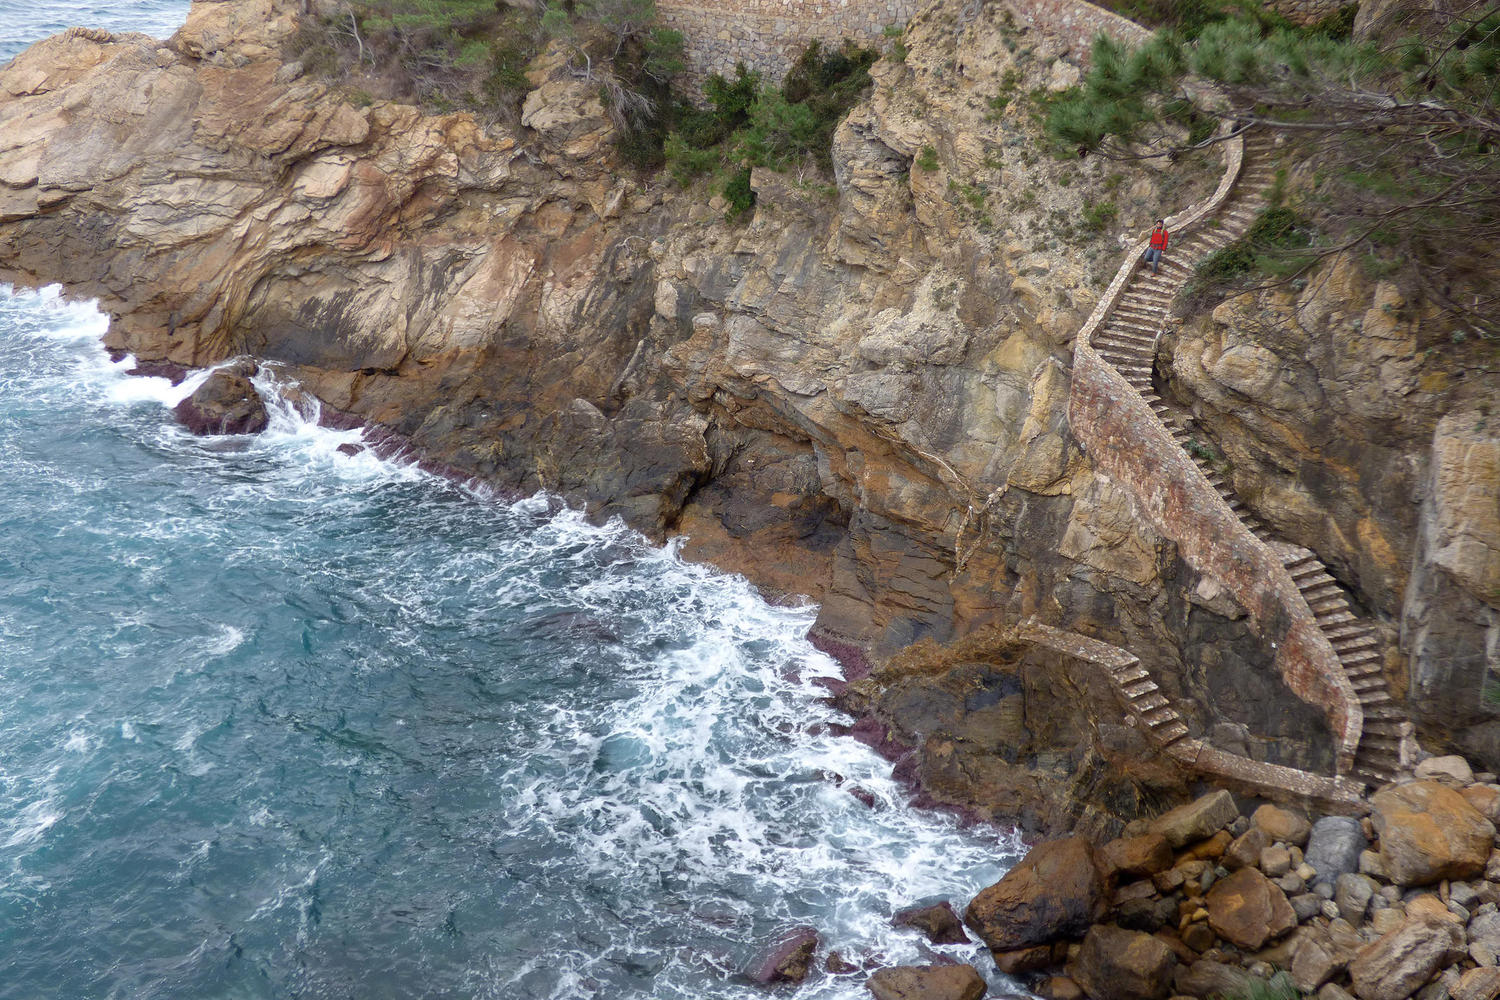 Stairway in the cliffs of Costa Brava